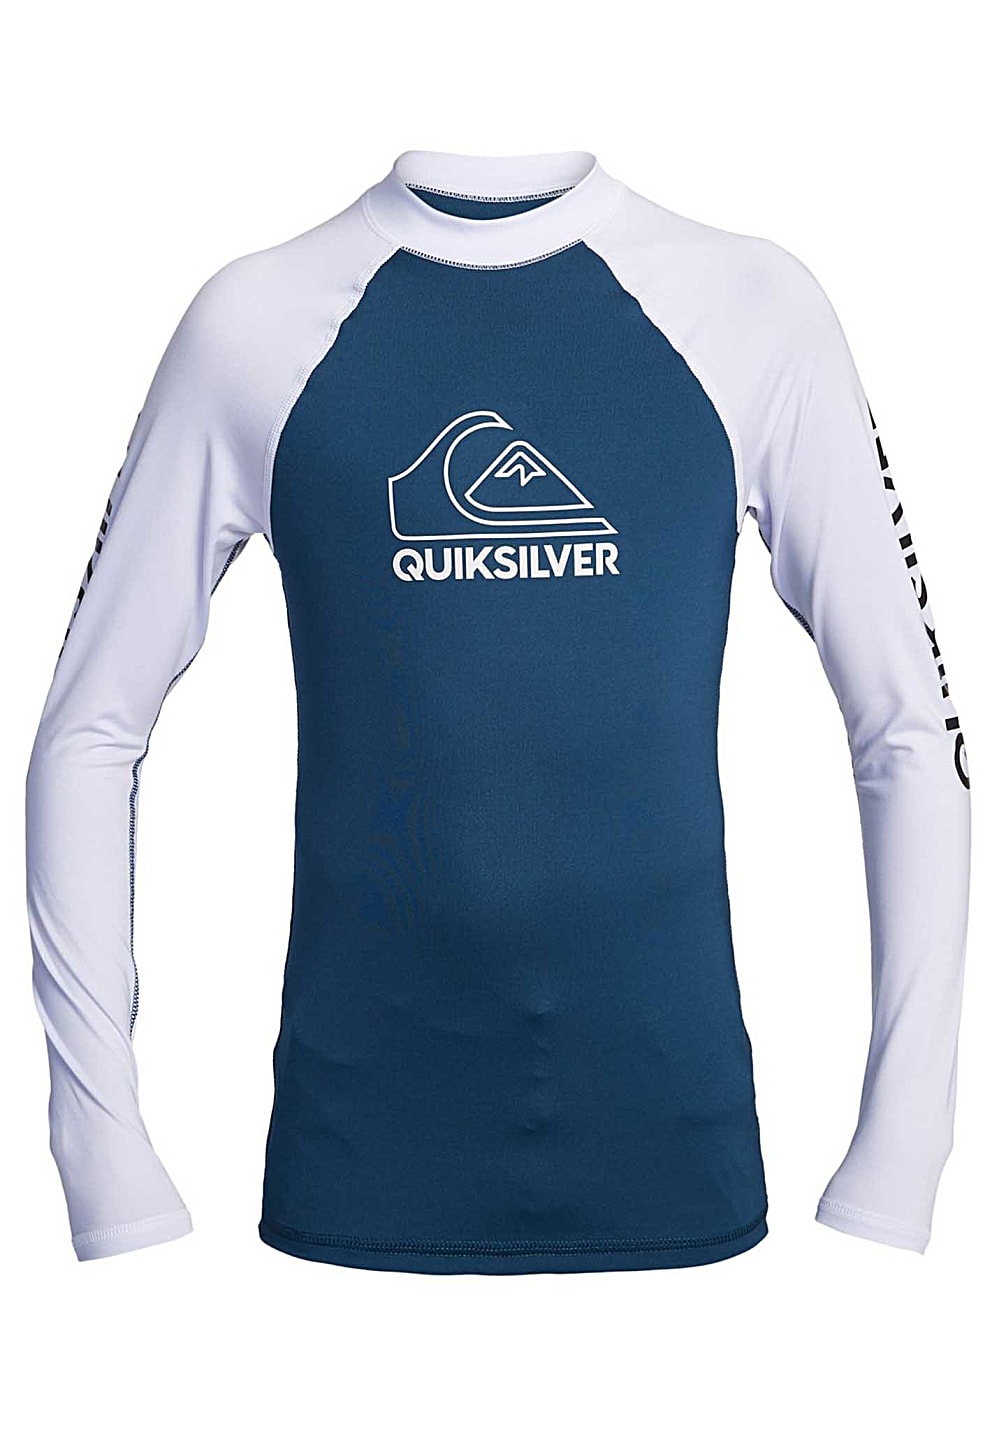 Boysbademode - Quiksilver On Tour L S Lycra für Jungs Blau - Onlineshop Planet Sports